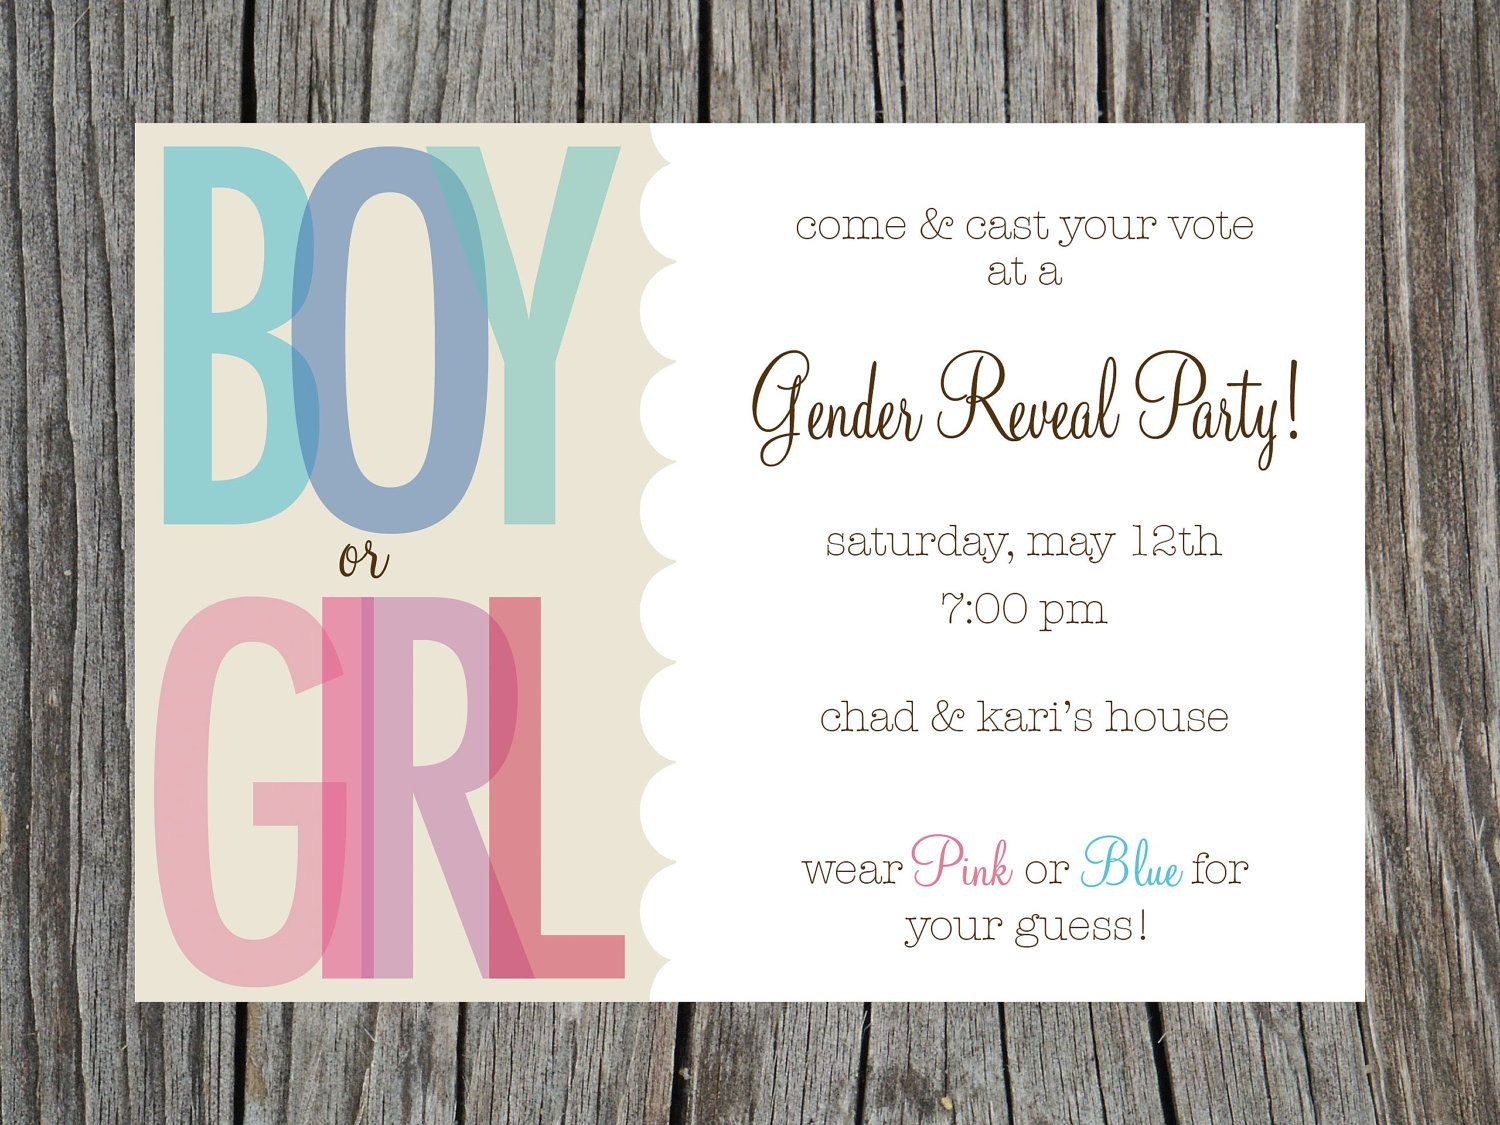 Gender Reveal Party Invitations Free Templates | Invitstiondown - Free Printable Gender Reveal Templates